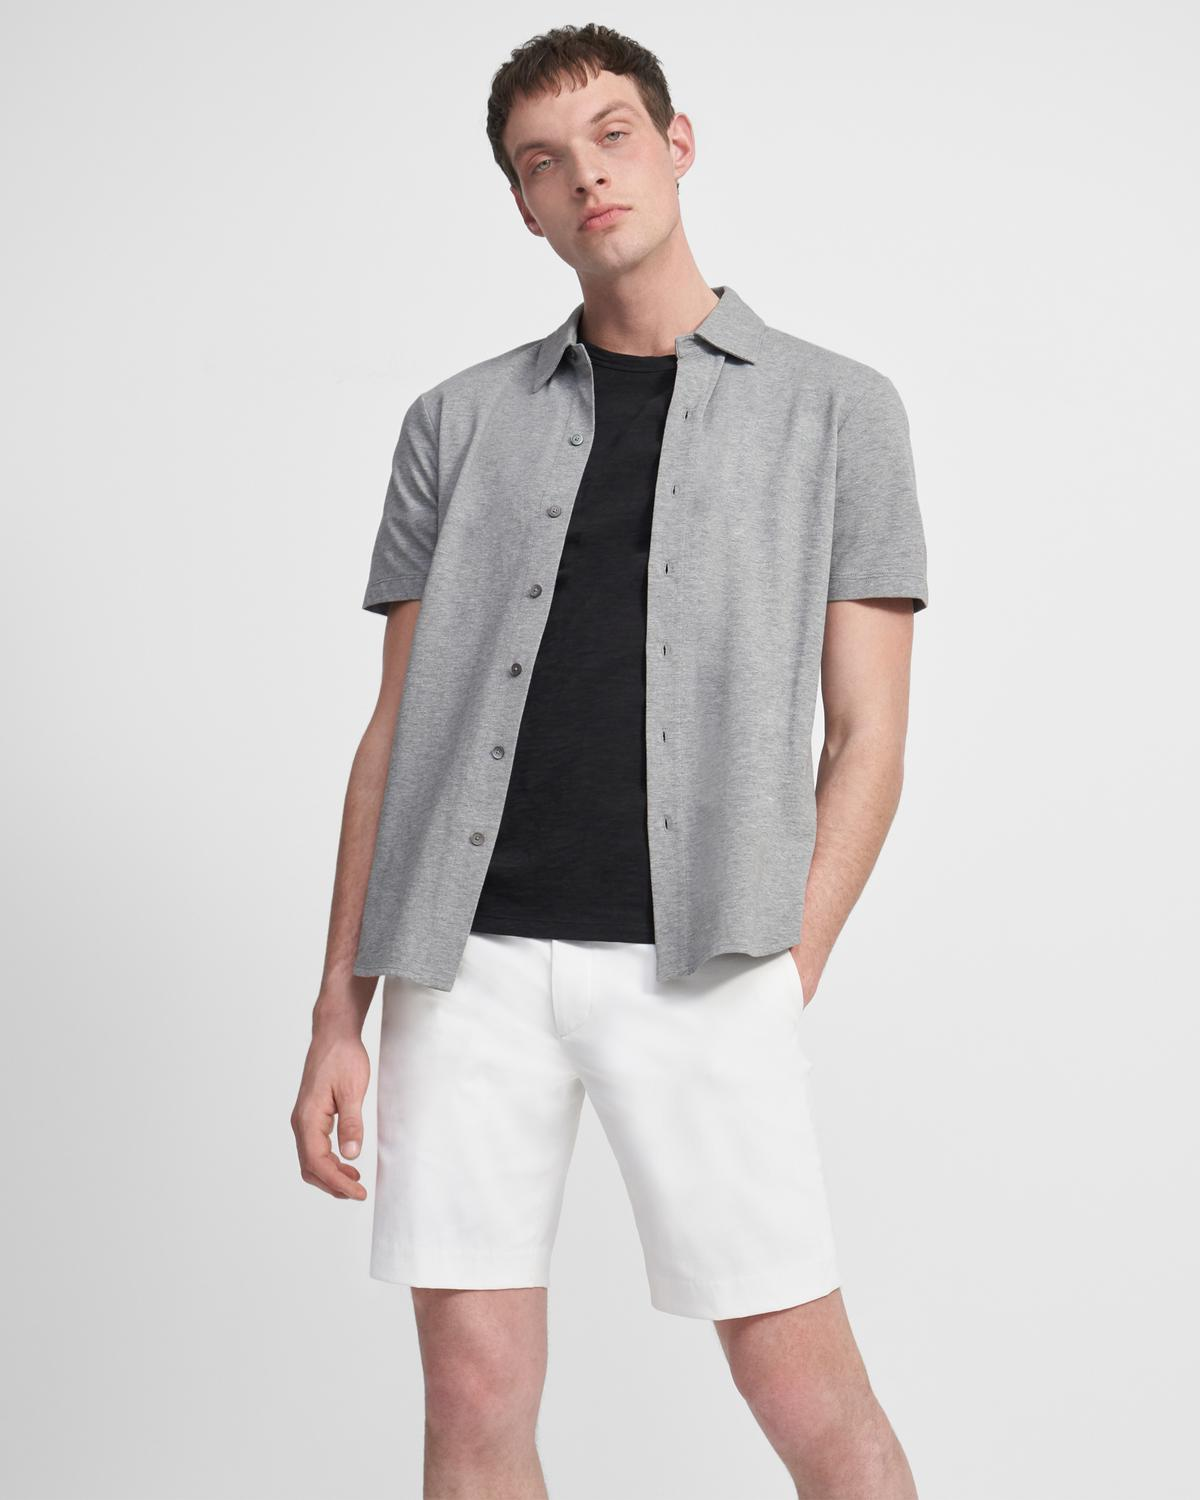 FAIRWAY SHIRT